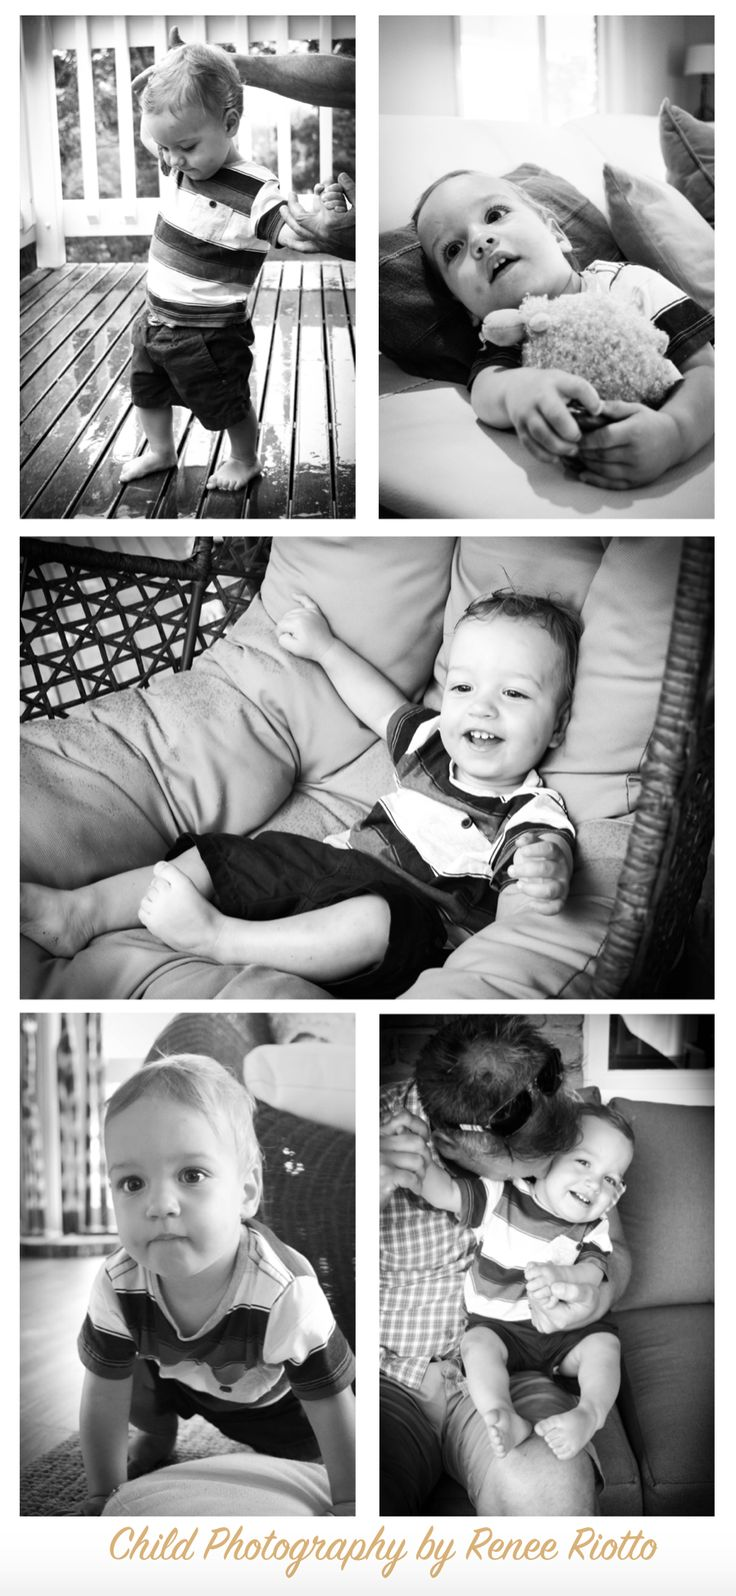 Natural and candid black and white photos of a young child. Baby, children and family photography by Renee Riotto now available in Melbourne. #photography #photo #candid #blackandwhite #photos #baby #child #children #natural #black #white #outdoors #backlit #portrait #portraitphotography #portraits #photographer